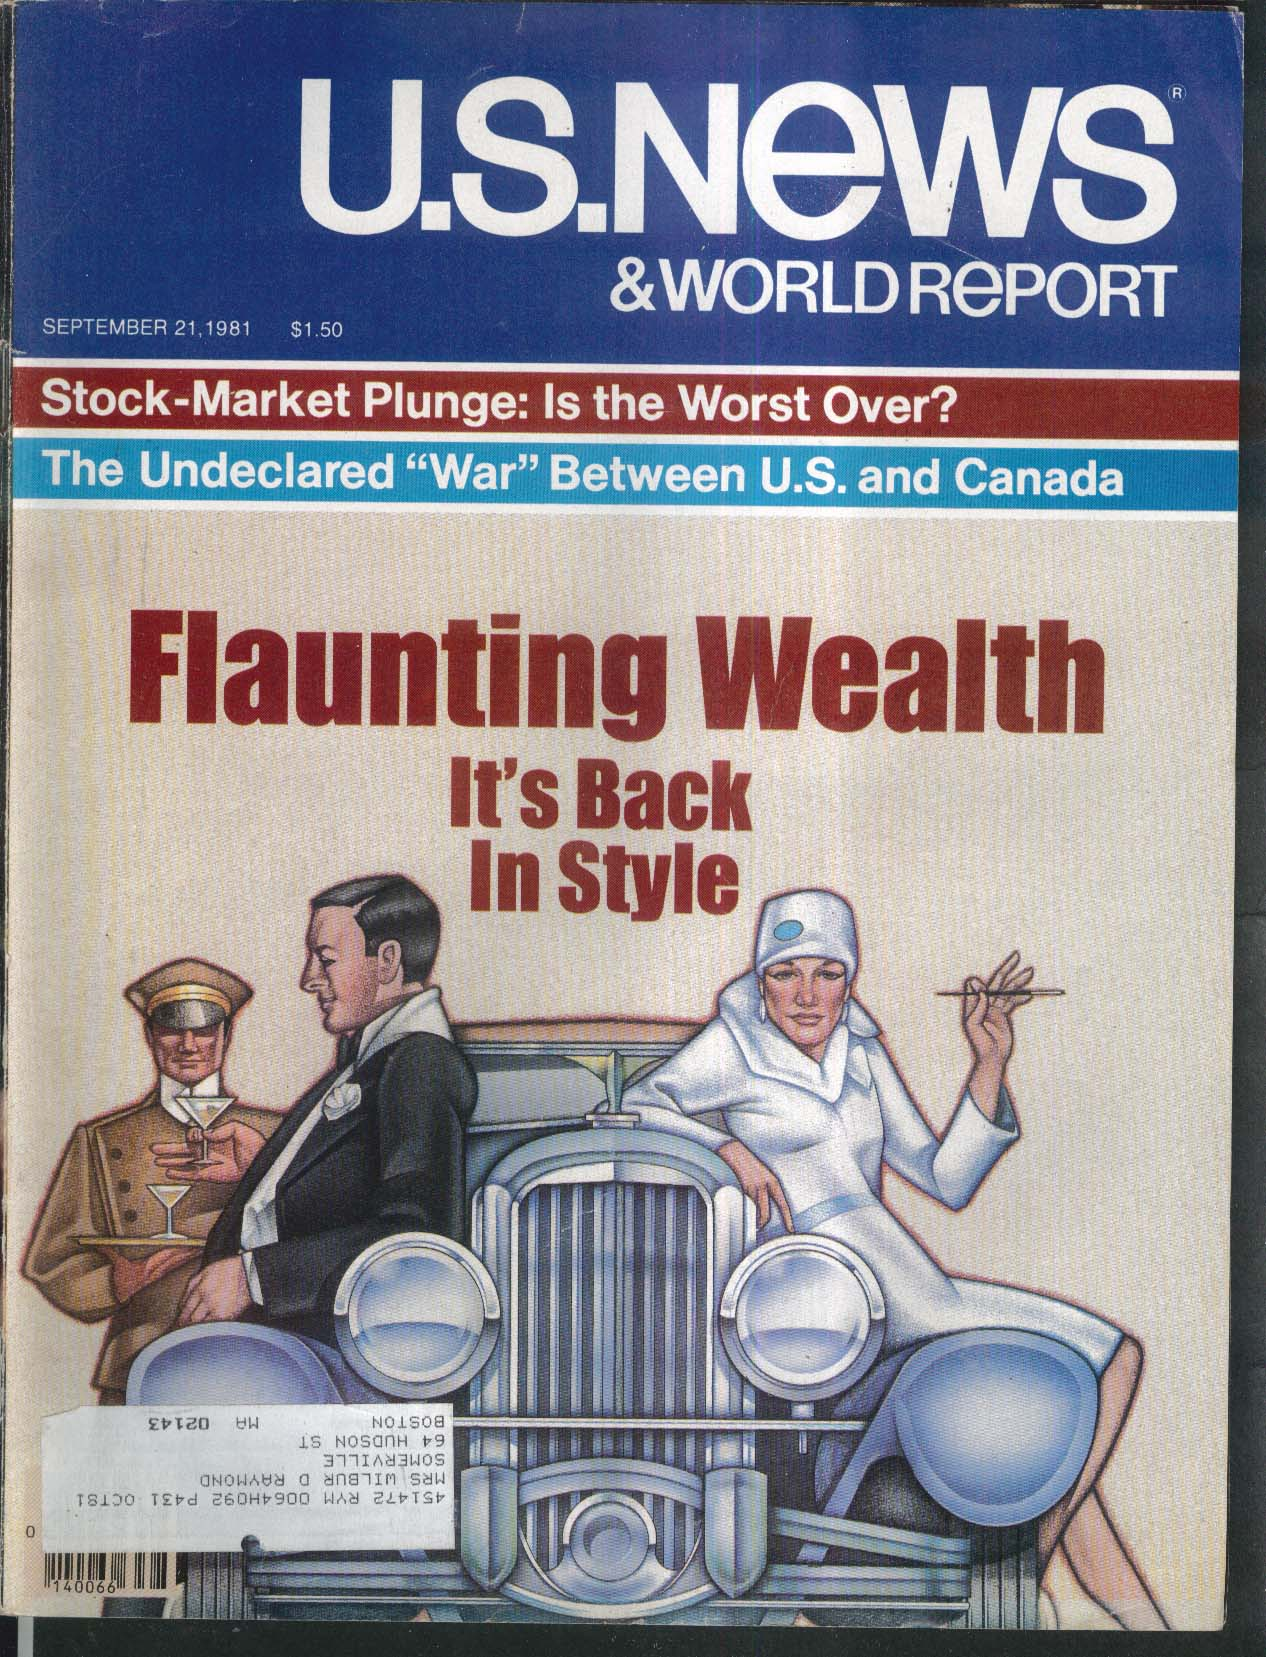 US NEWS & WORLD REPORT Stock-Market Plunge Ronald Reagan Israel 9/21 1981